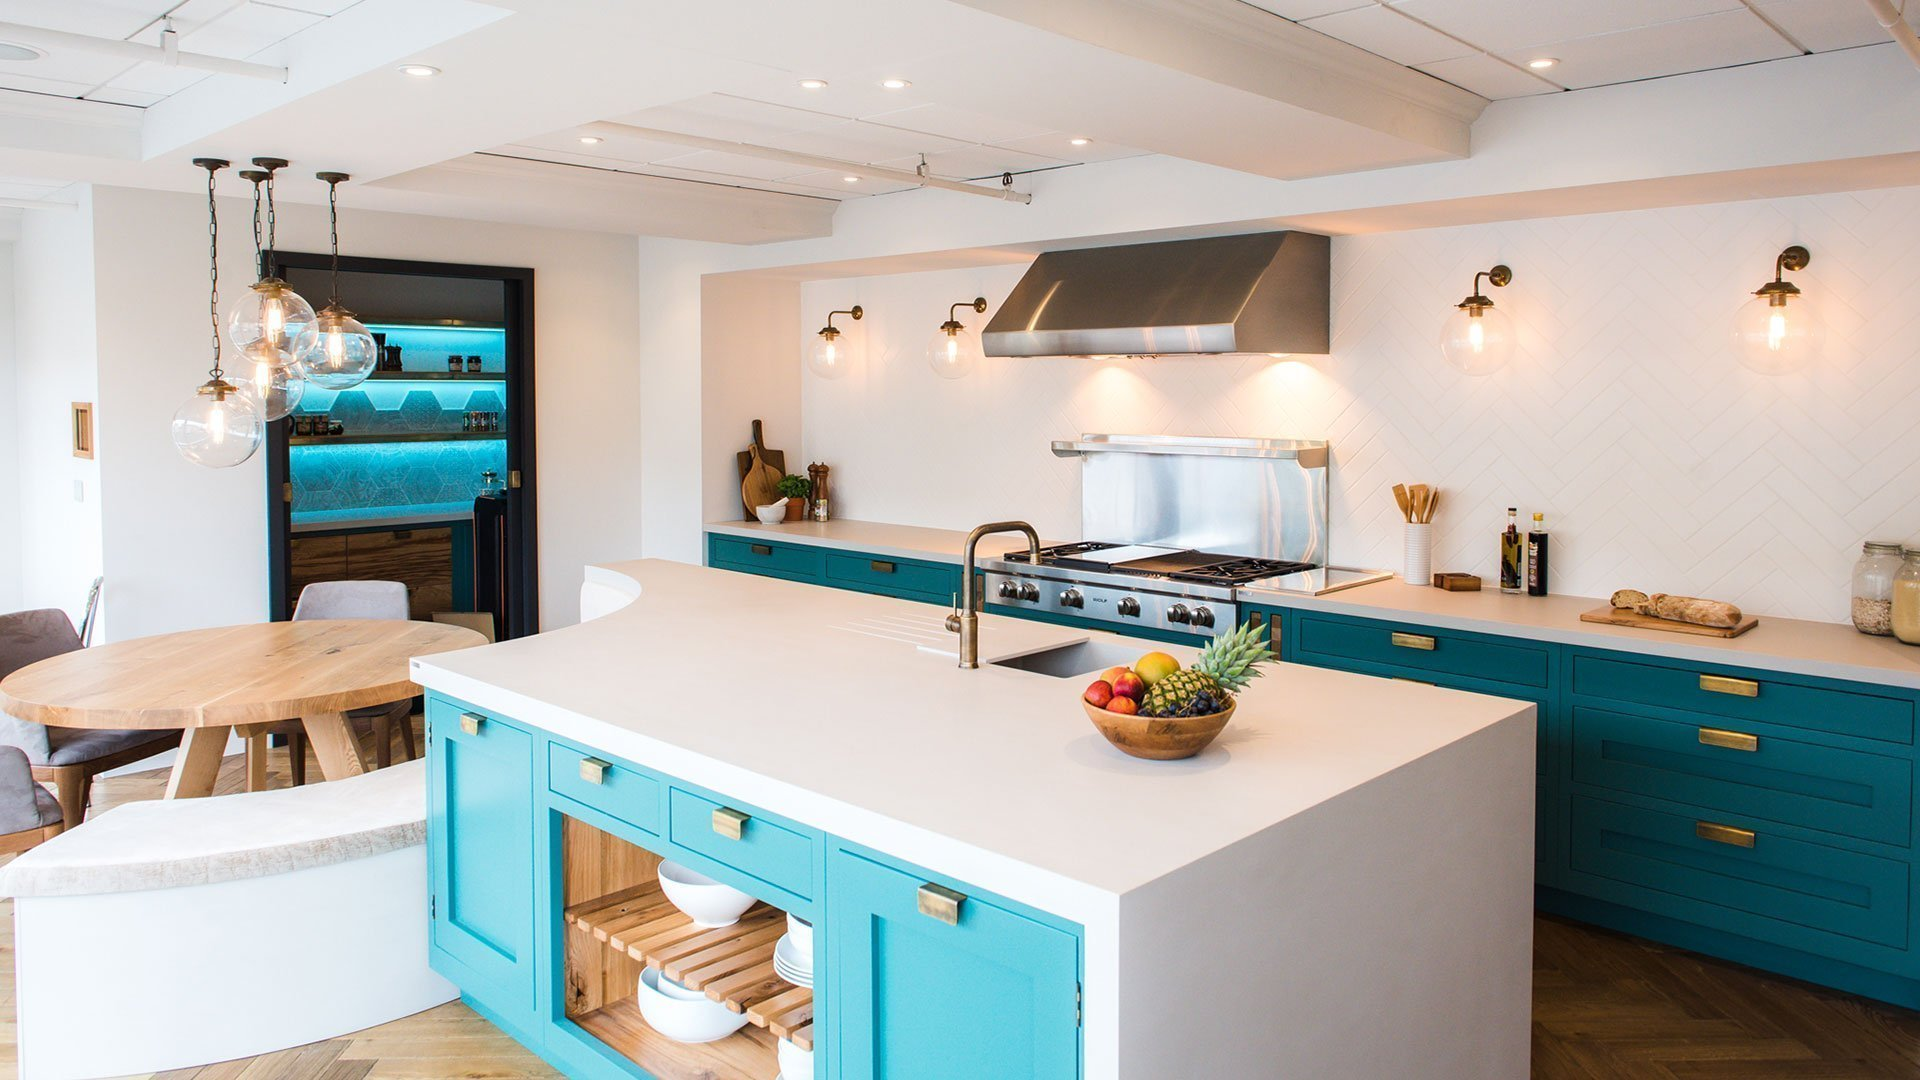 Angled view of Corian® island and worktops